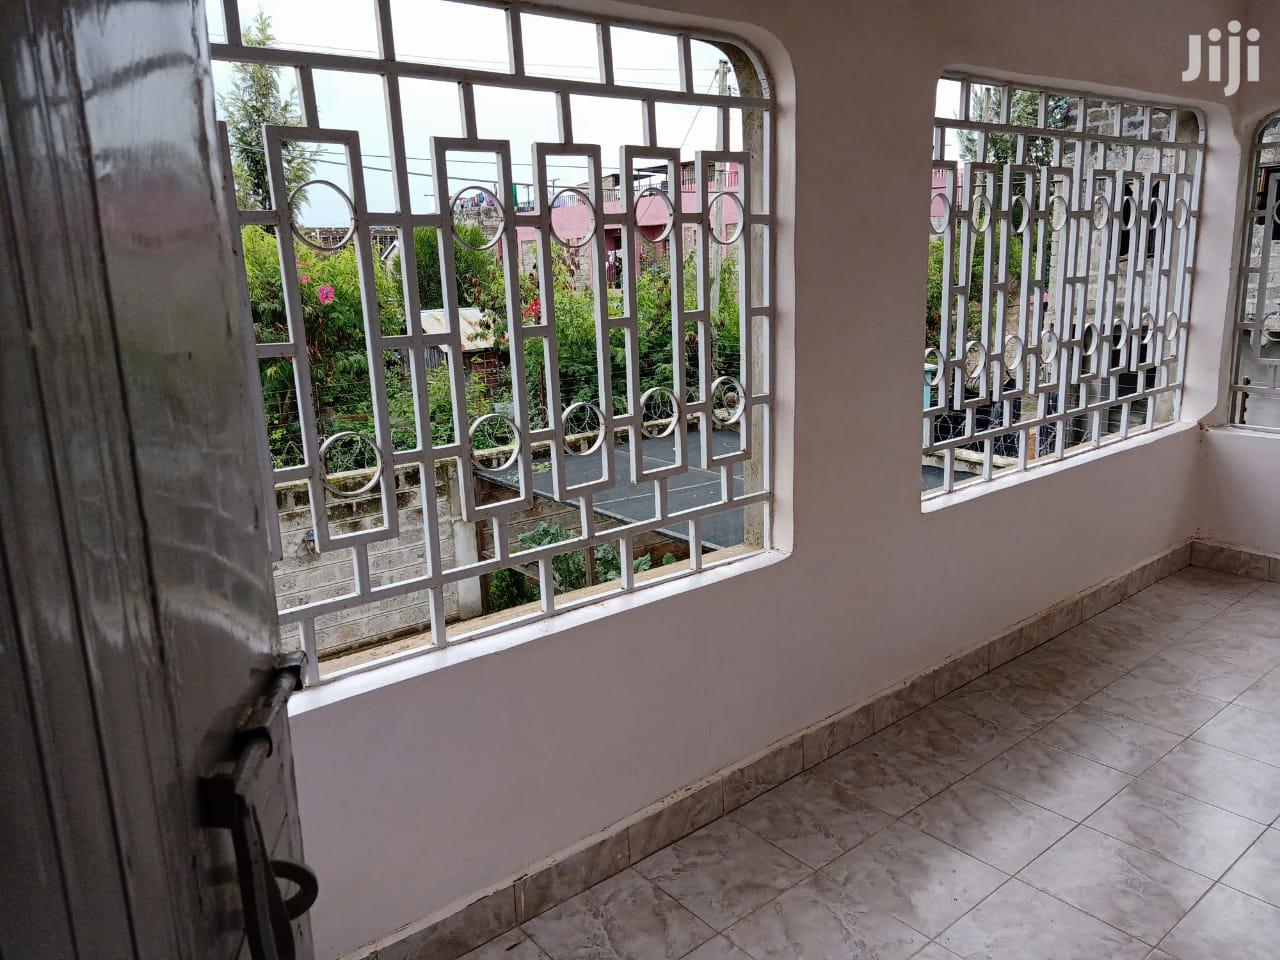 House For Sale | Houses & Apartments For Sale for sale in Embakasi, Nairobi, Kenya